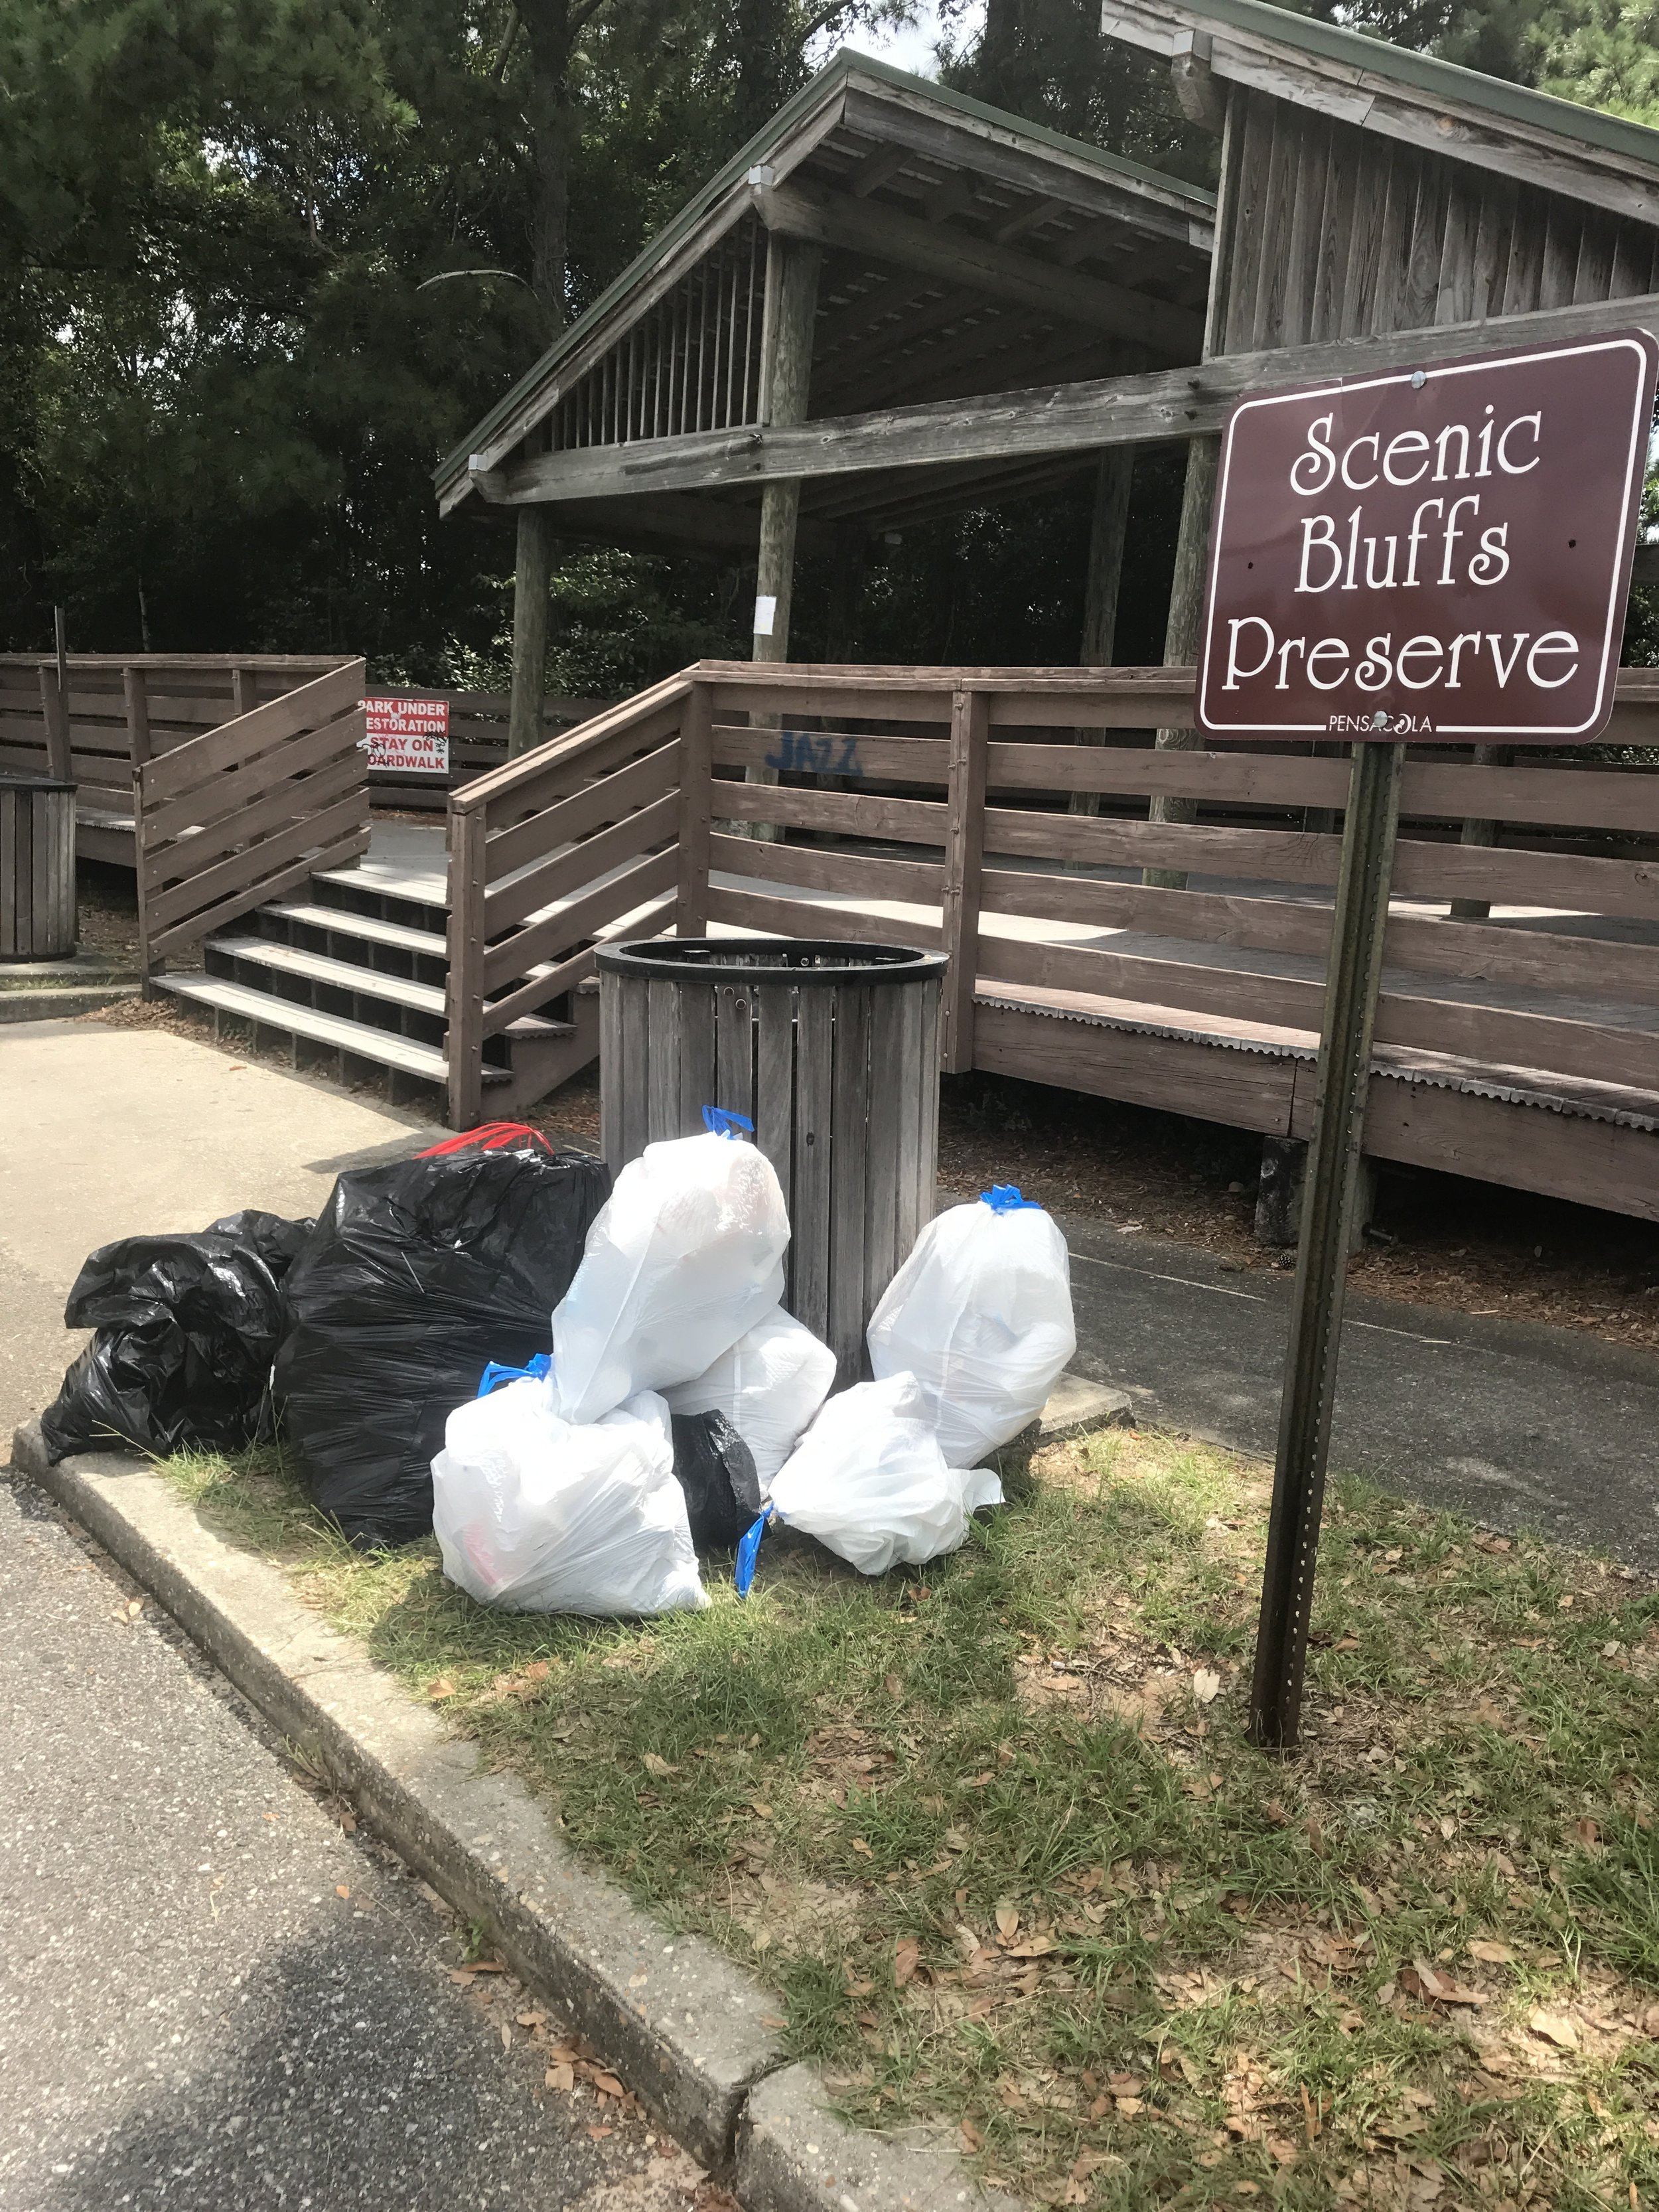 18 volunteers picked up 139 lbs of styrofoam, beverage containers and cig butts. Apple Market supplied energy in form of breakfast biscuits and coooold water! -